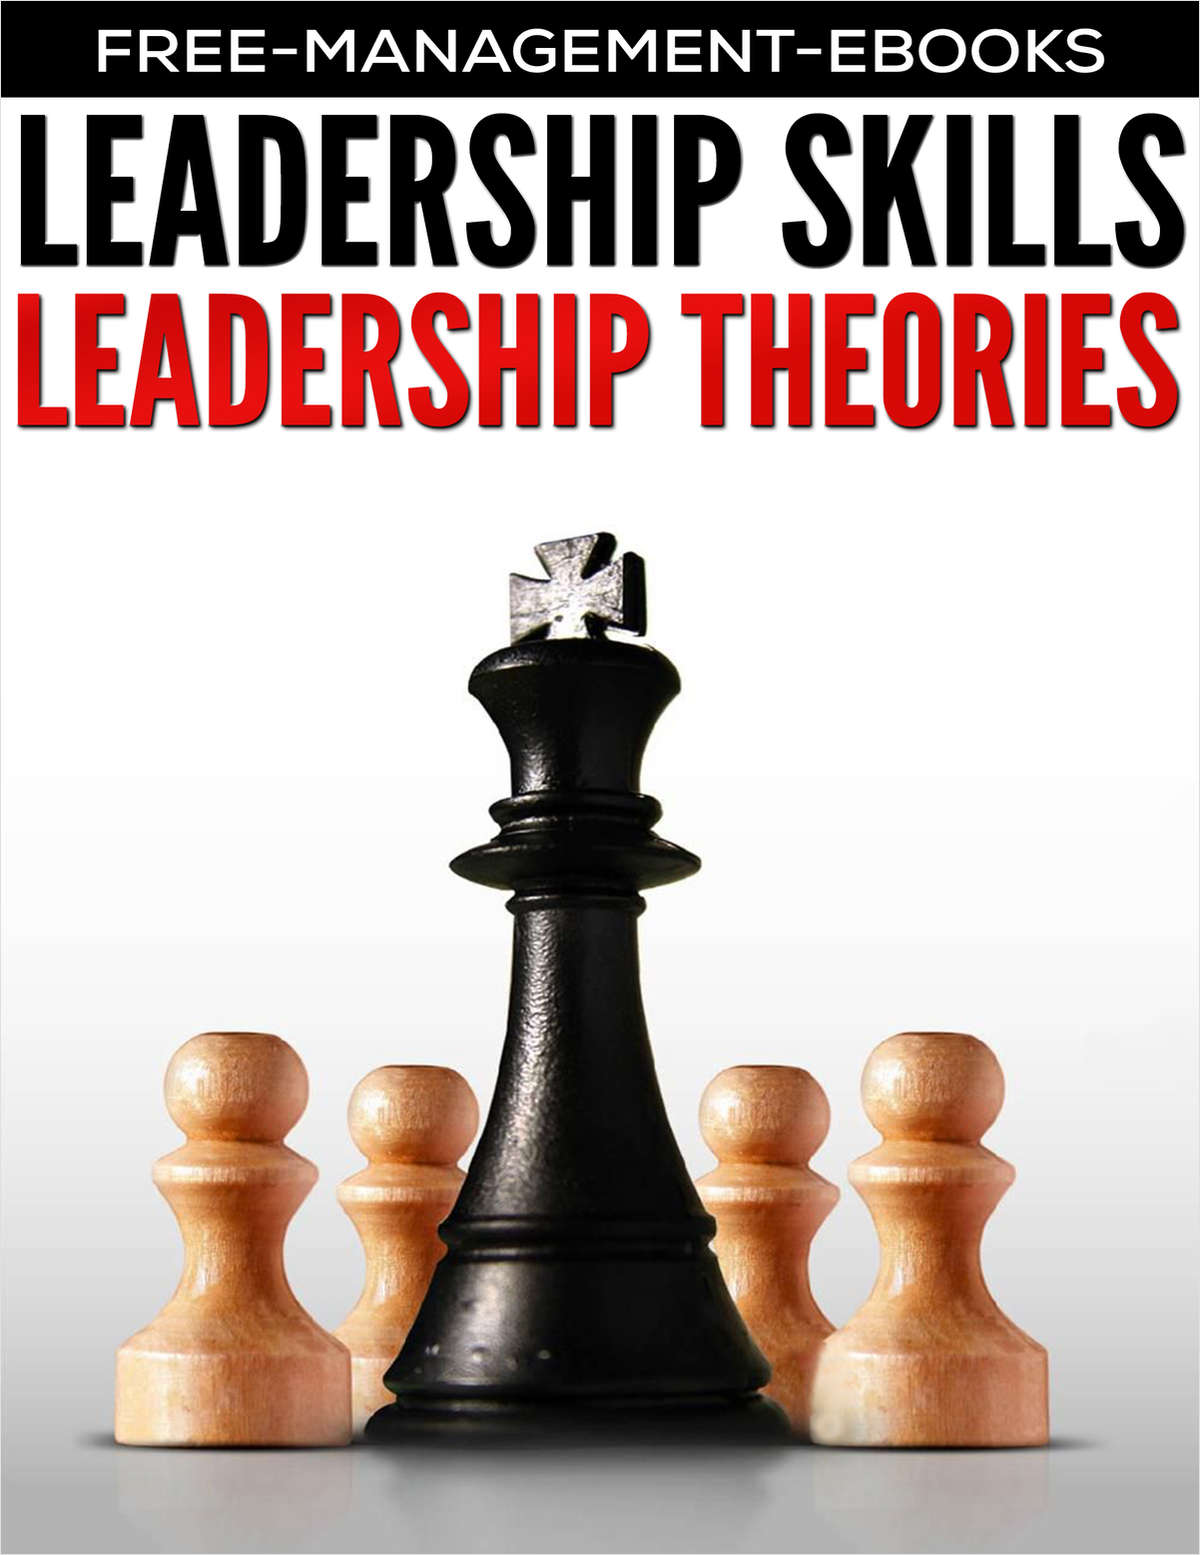 Leadership Theories - Developing Your Leadership Skills